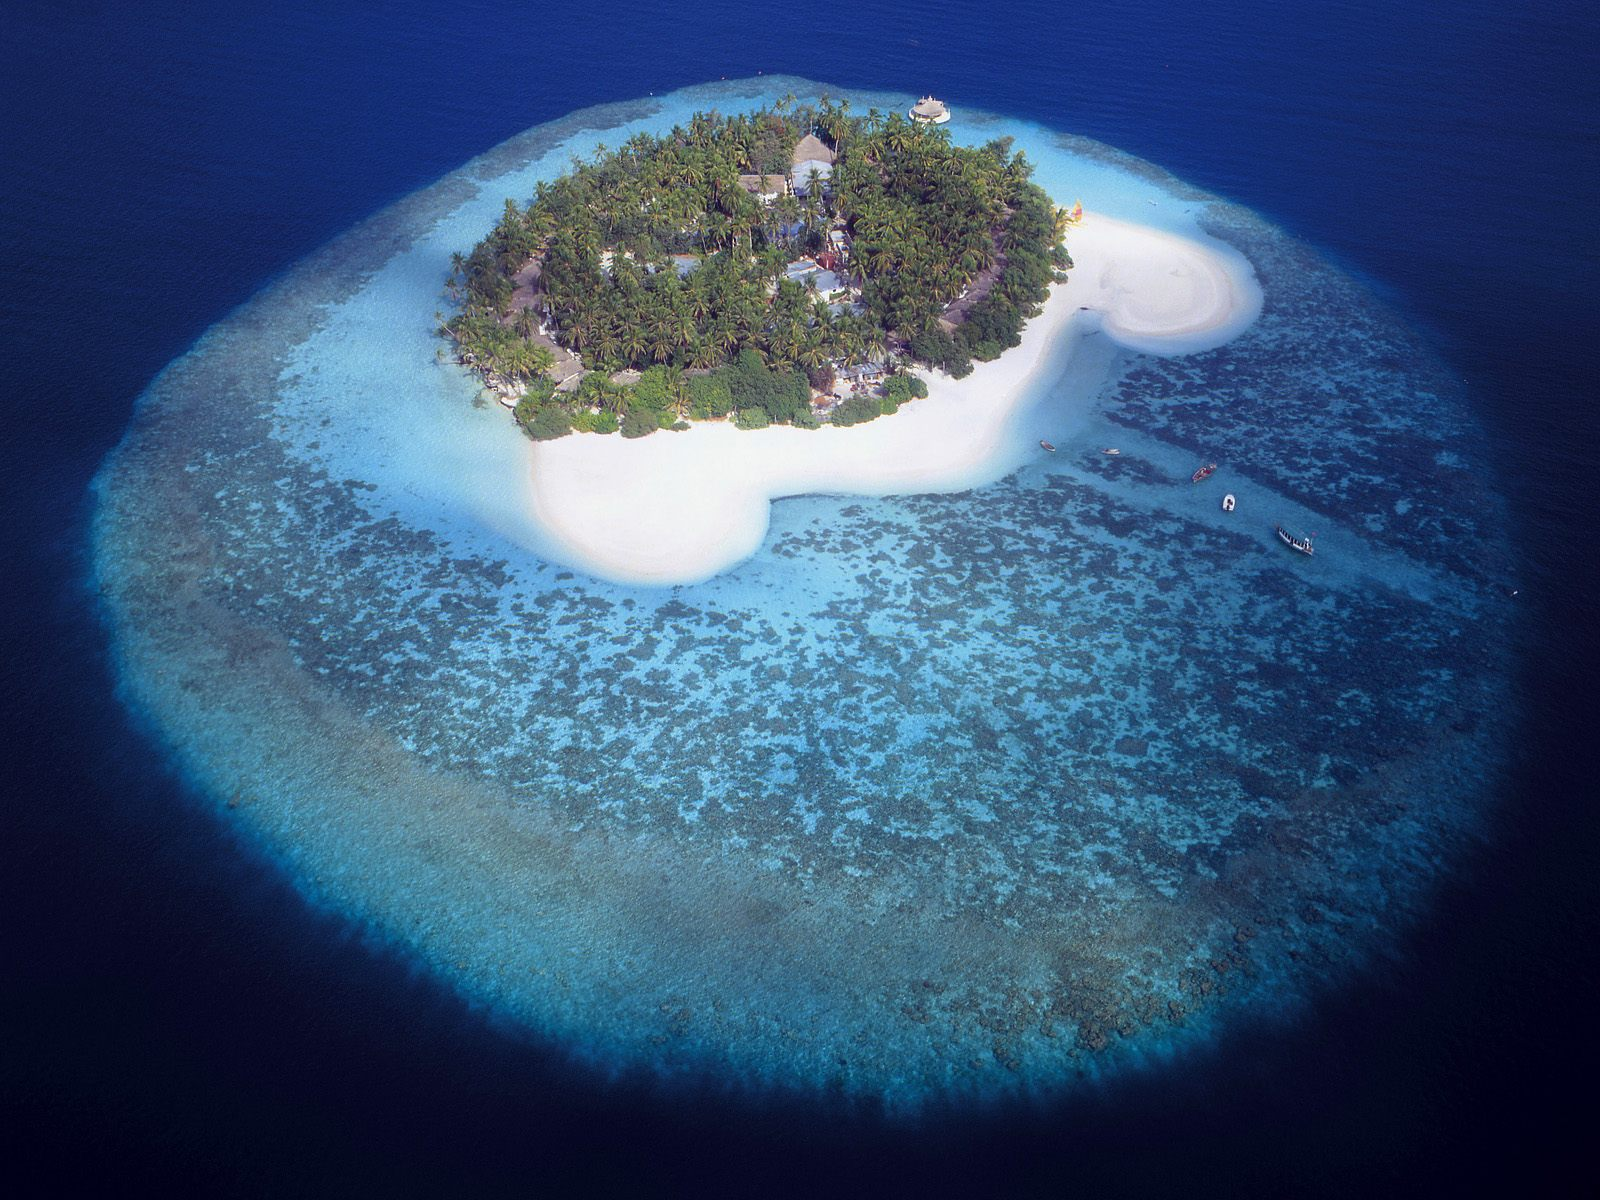 Aerial View of a Tropical Island Maldives